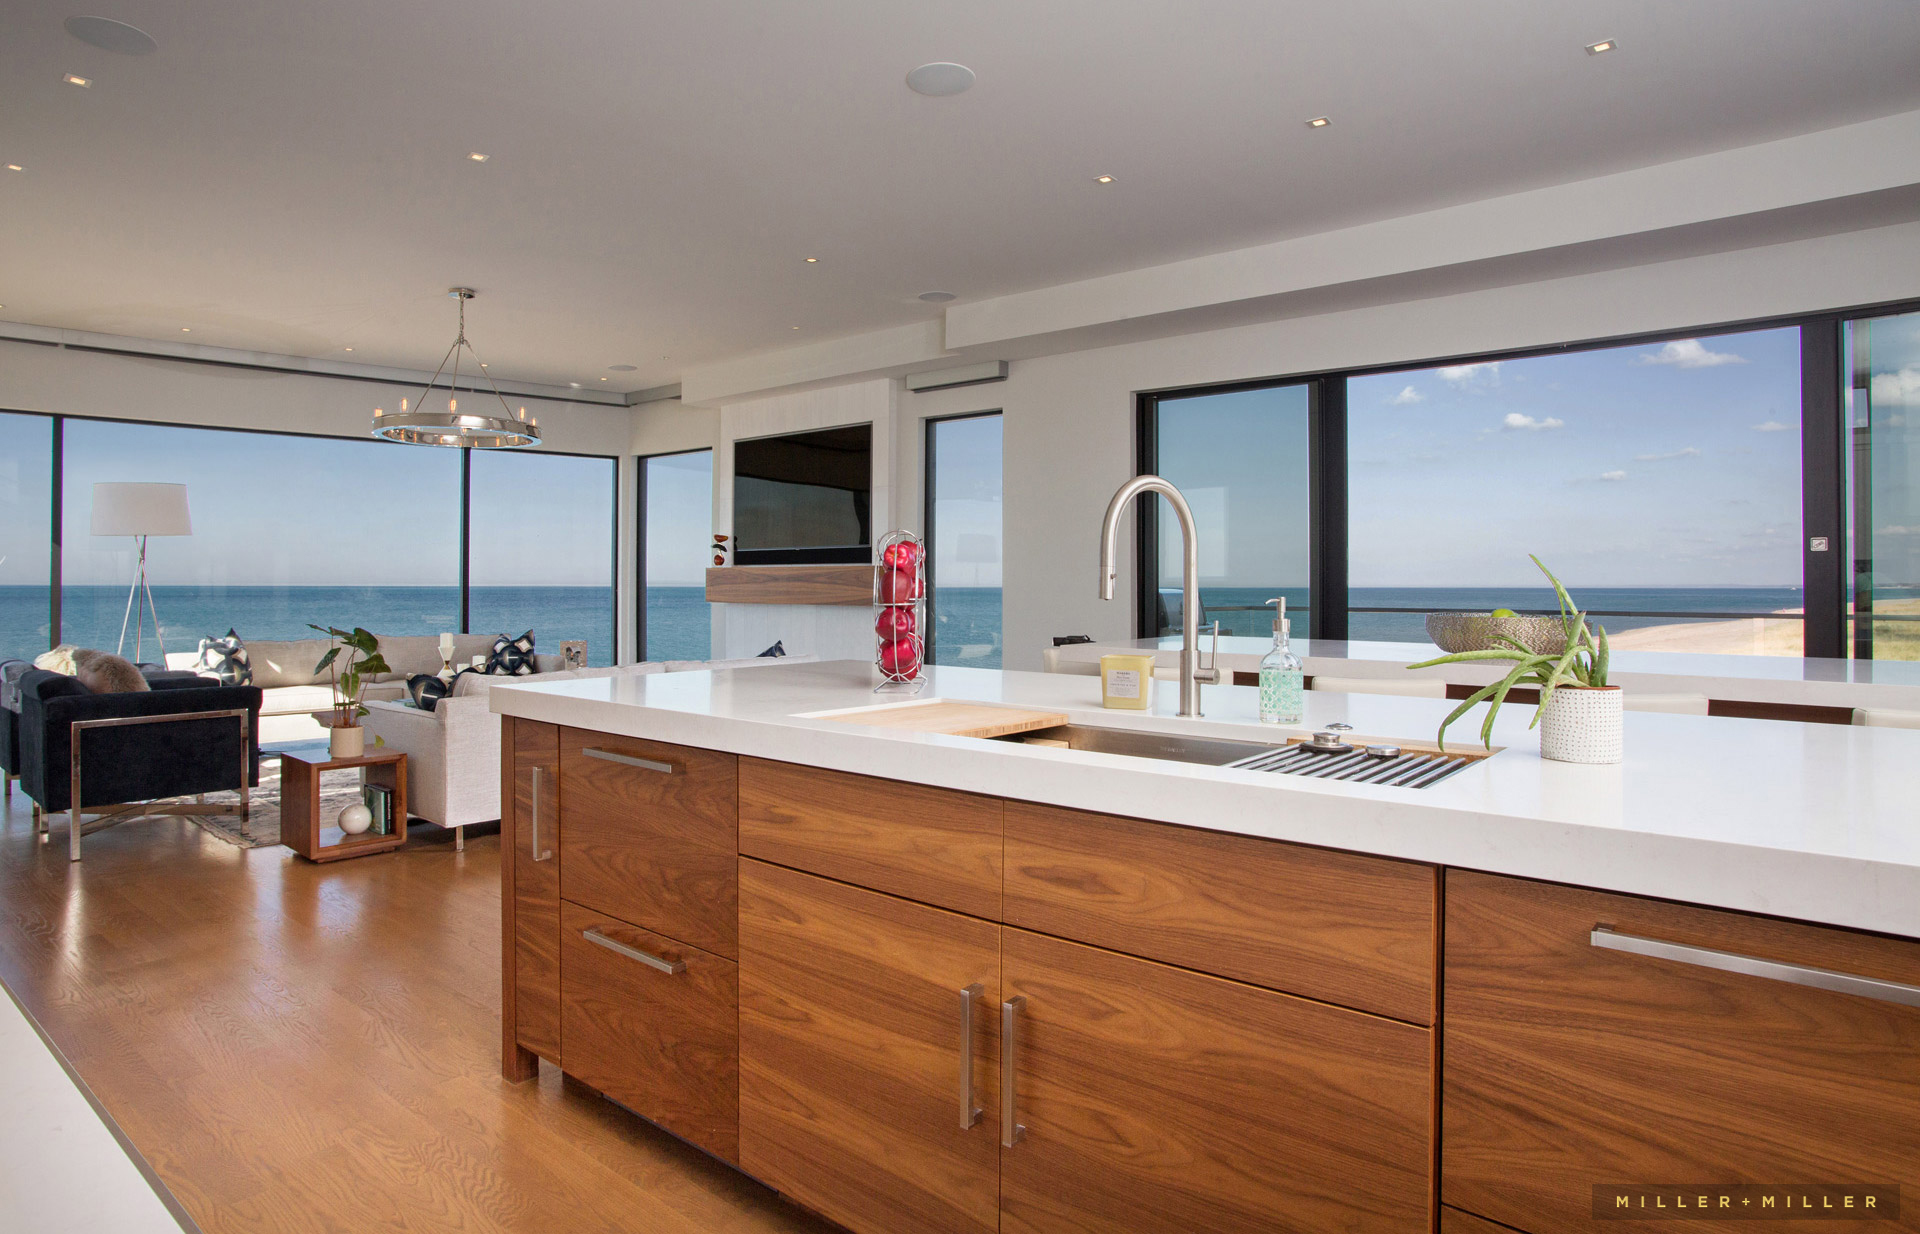 Lake michigan beach homes real estate photographers - How to take interior photos for real estate ...